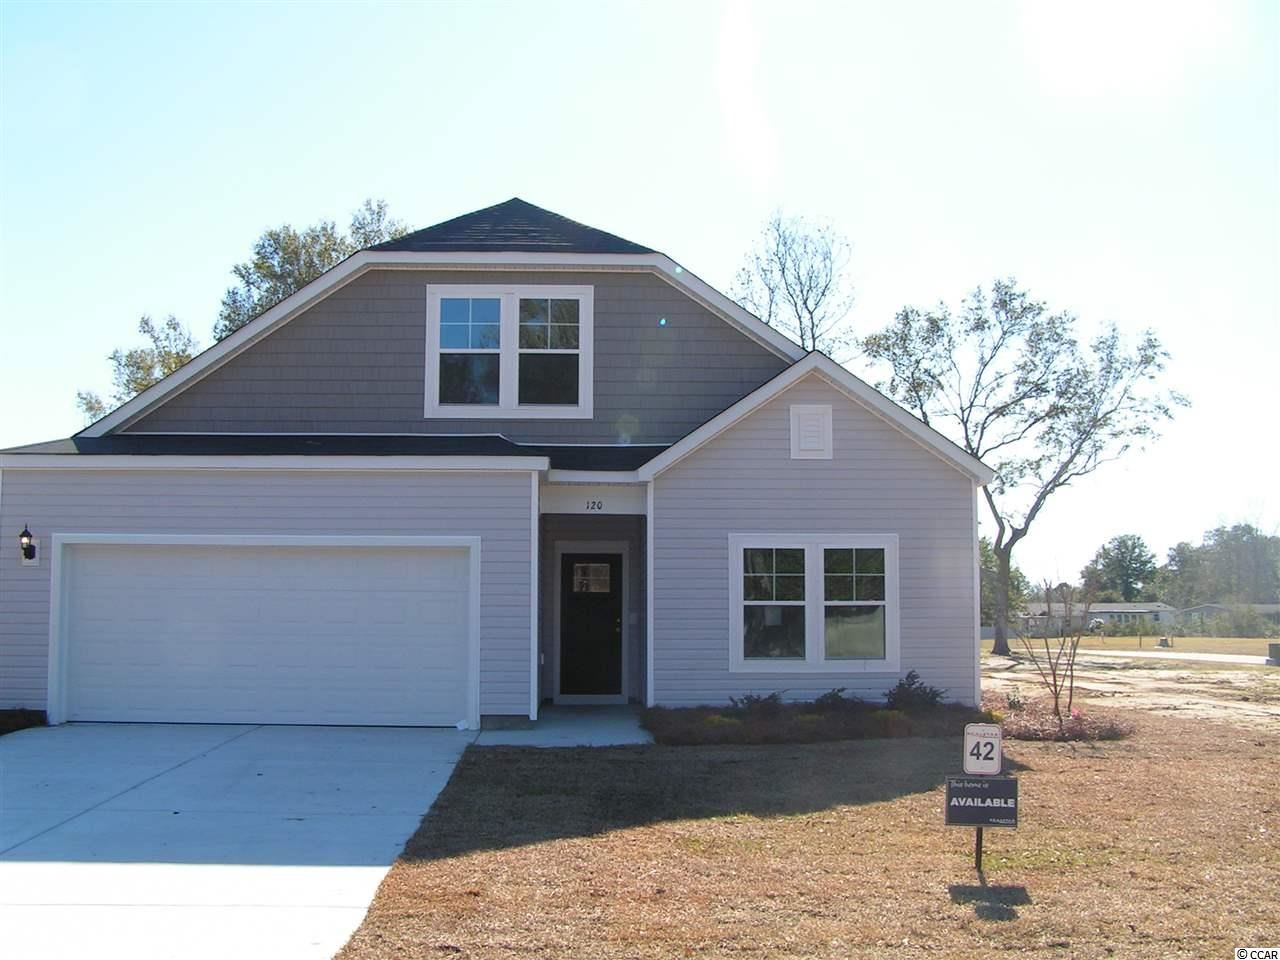 211 Clearwater Dr., Pawleys Island, SC 29585 - MLS#: 2004297